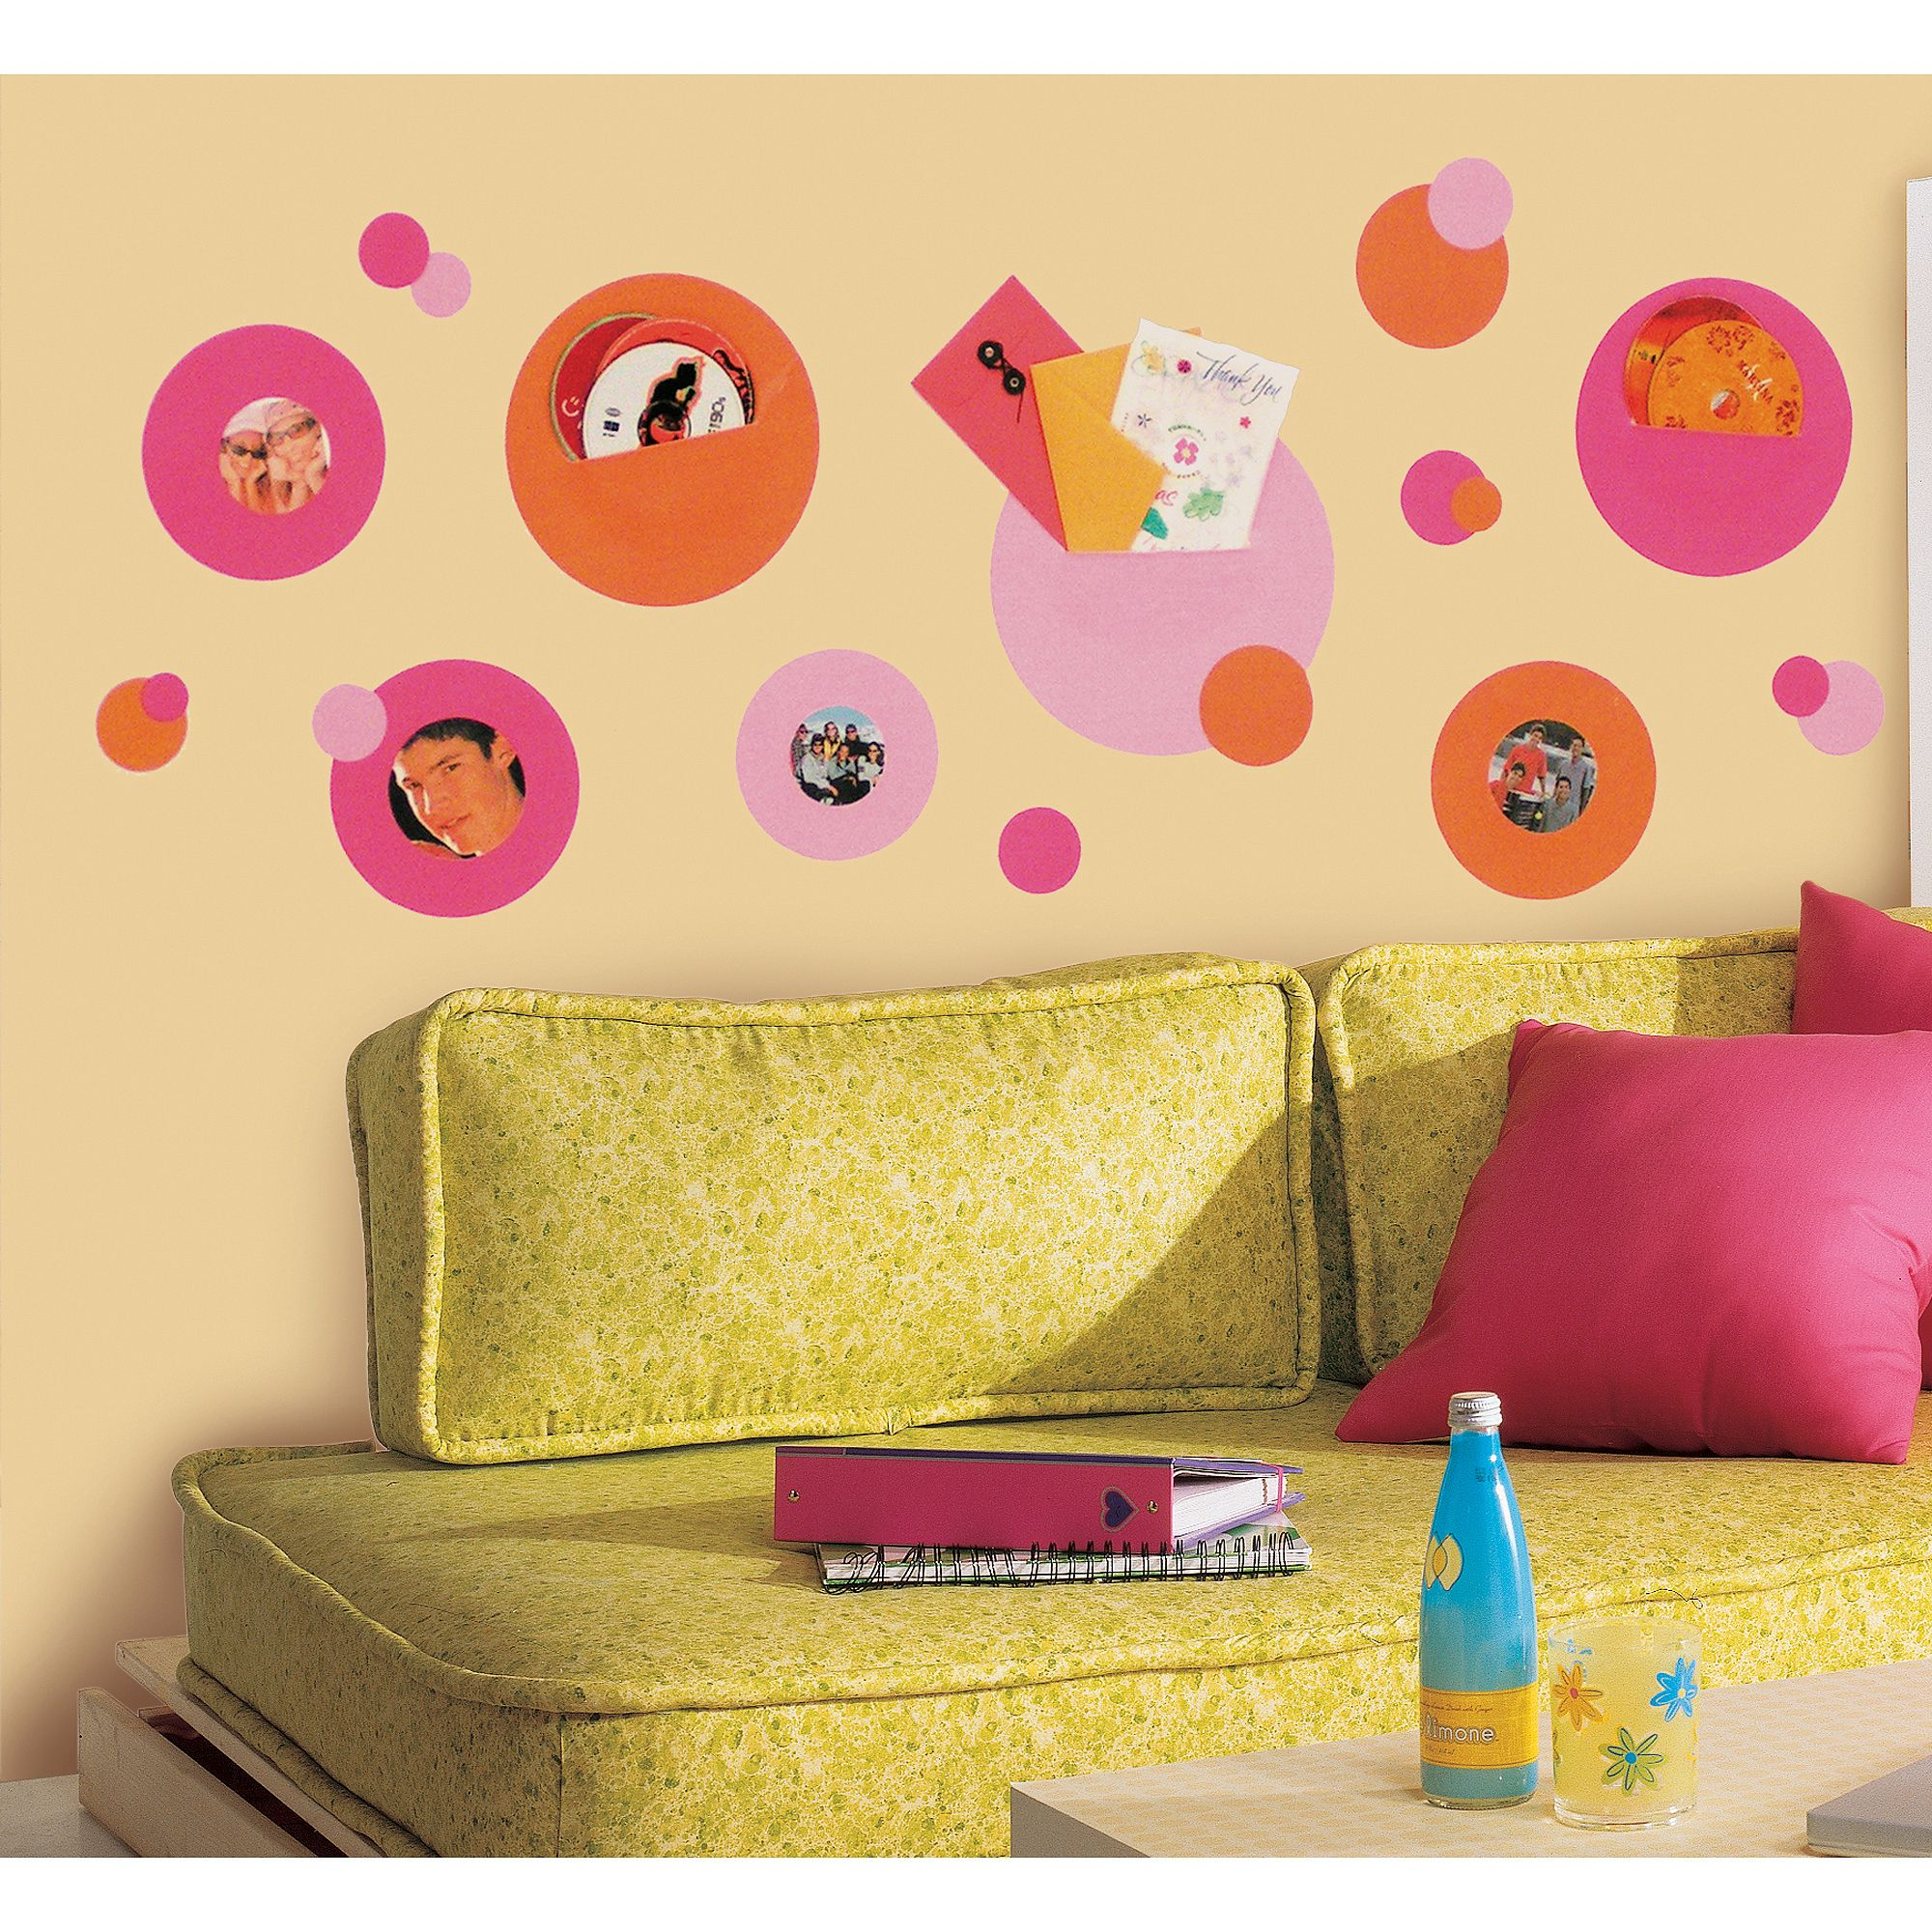 RoomMates Wallpockets Pink Peel and Stick Wall Decals